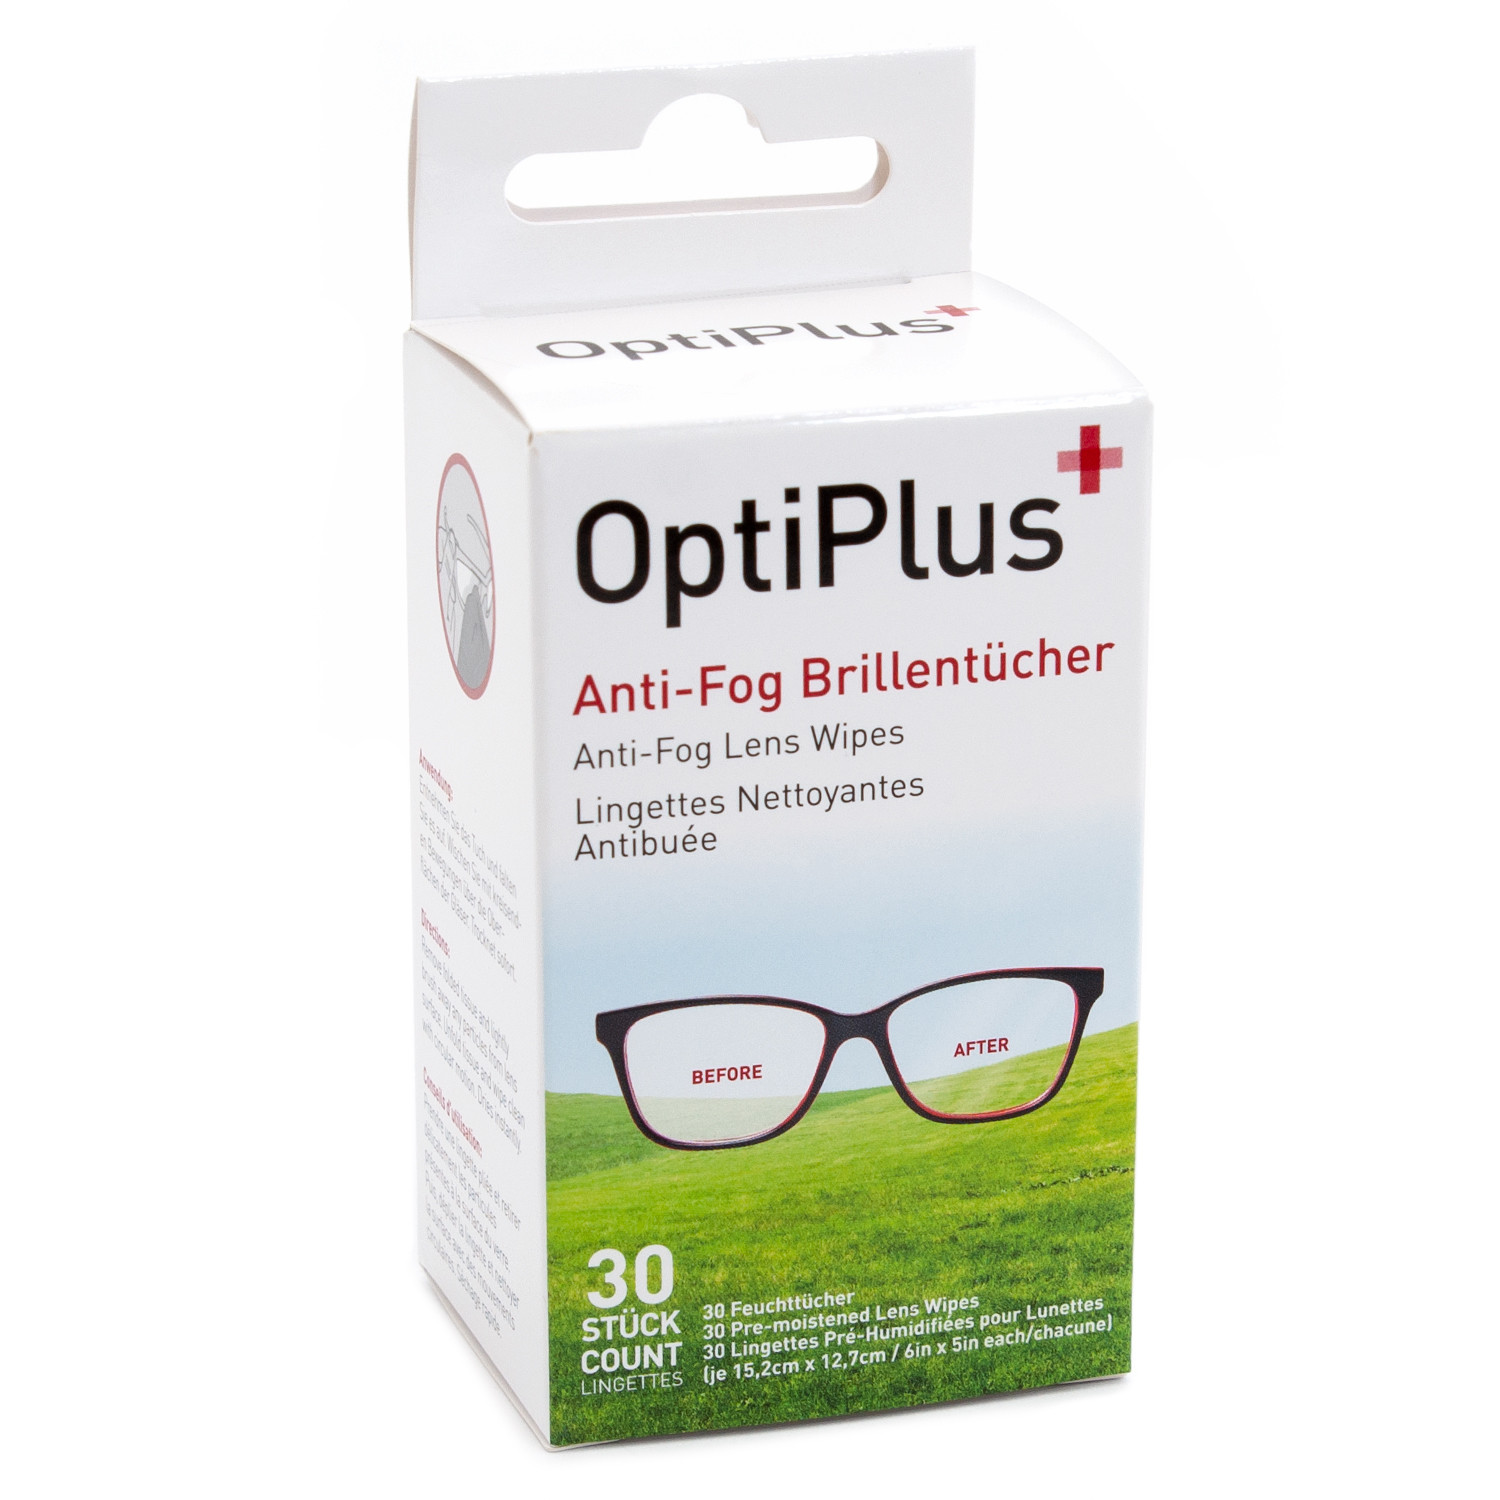 Optiplus Anti-Fog wipes 30pcs, minimum order 20 boxes (in steps of 20)